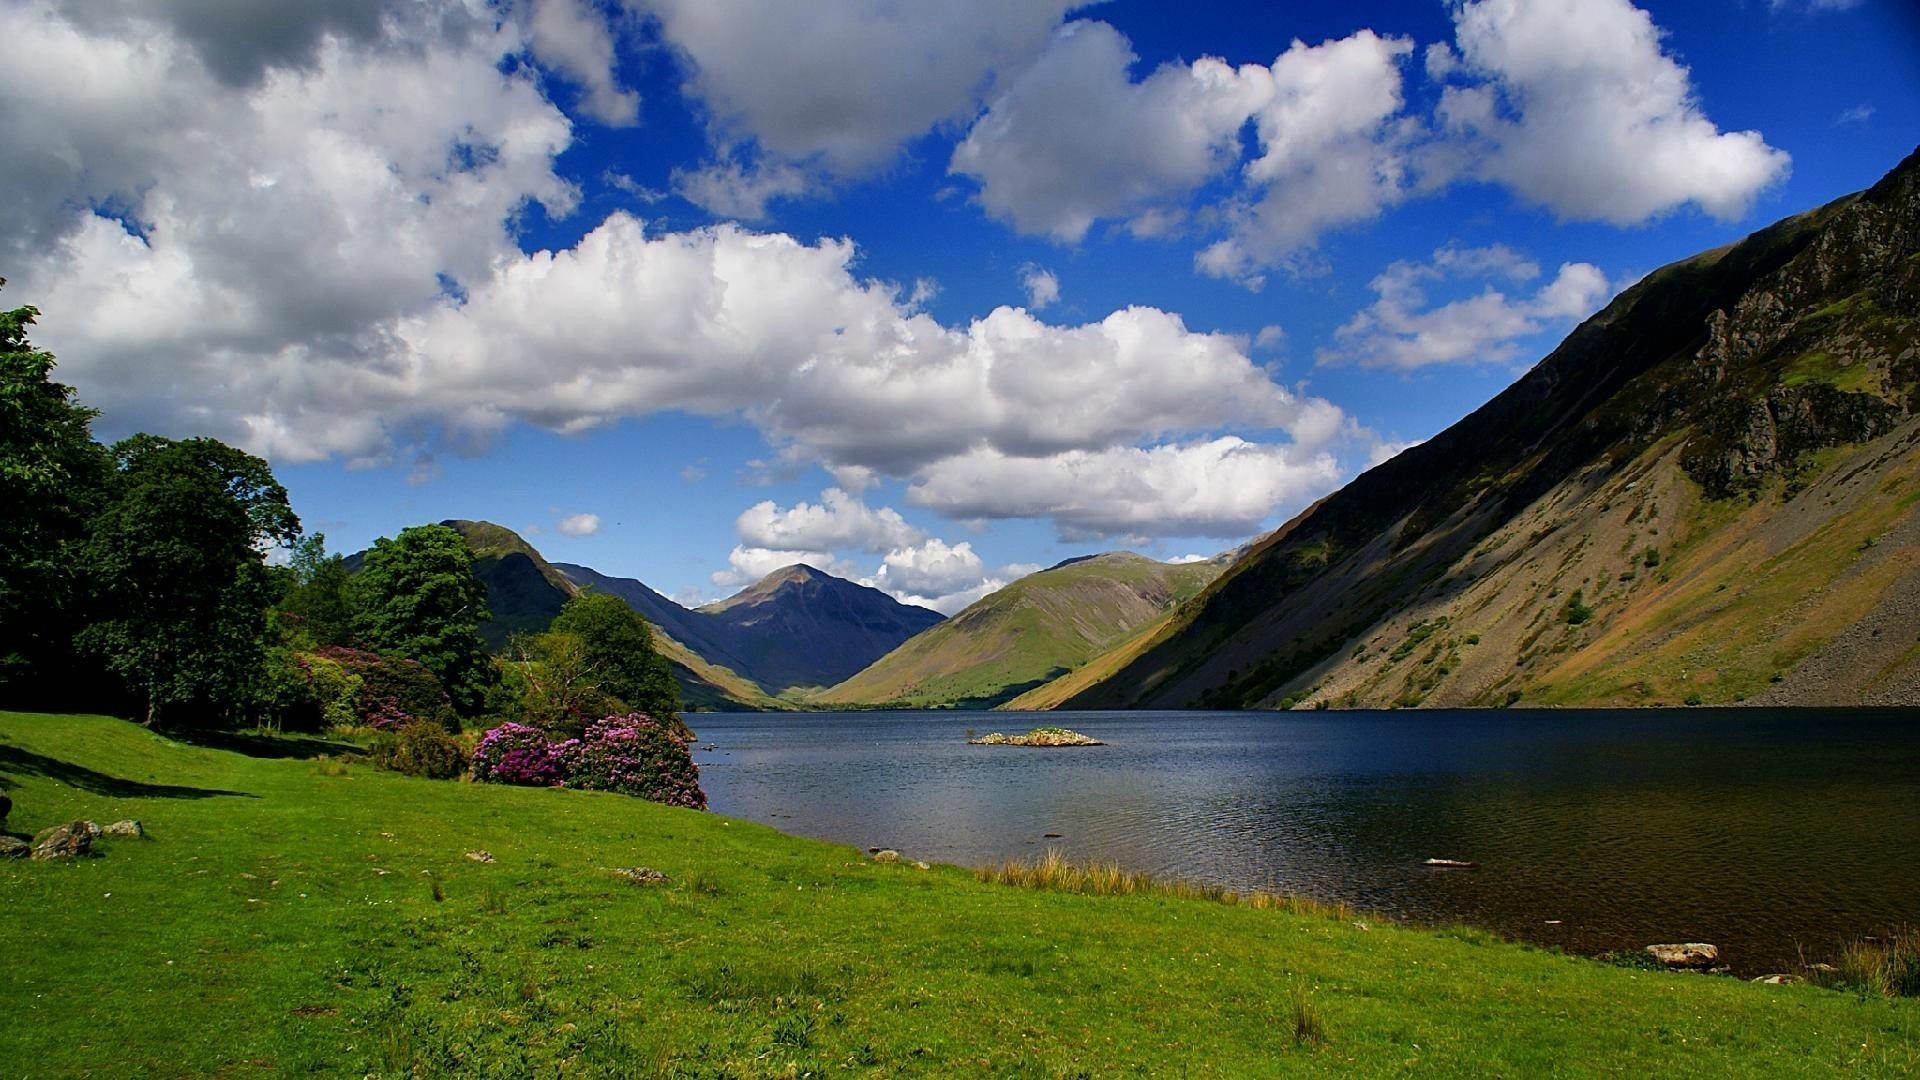 Most Beautiful Lake In The Lake District Wallpaper 1920x1080 px